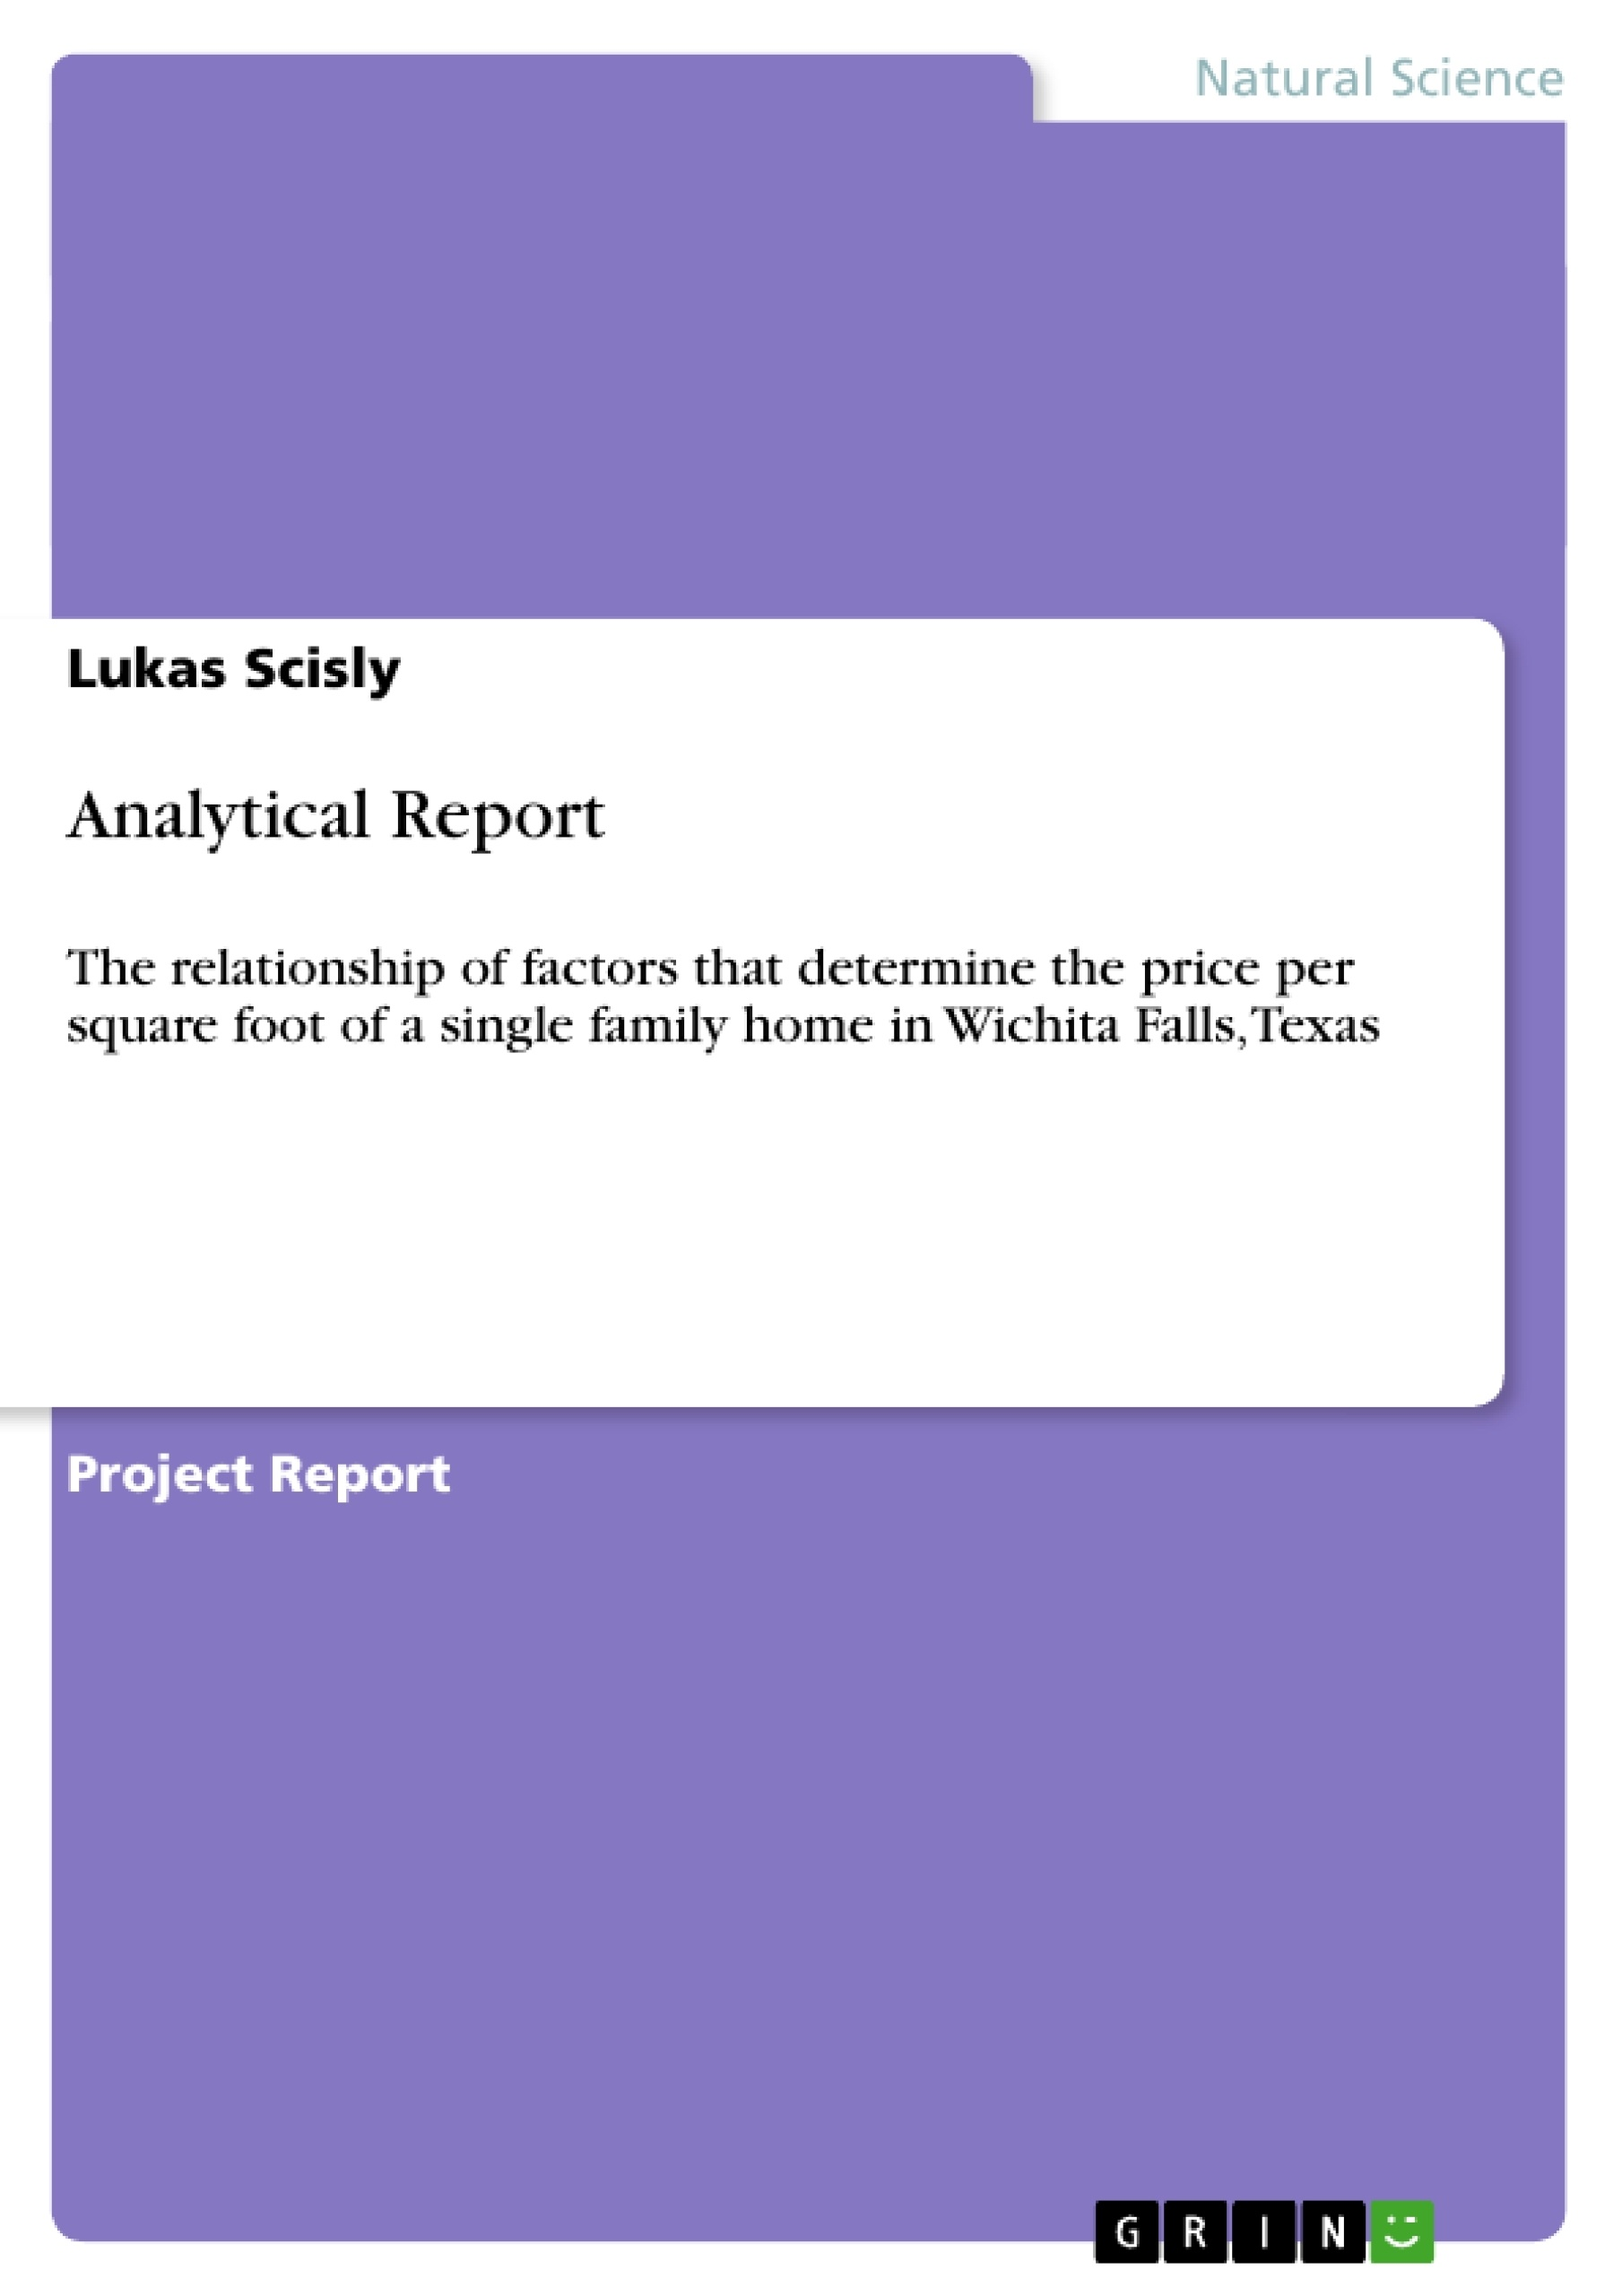 Title: Analytical Report